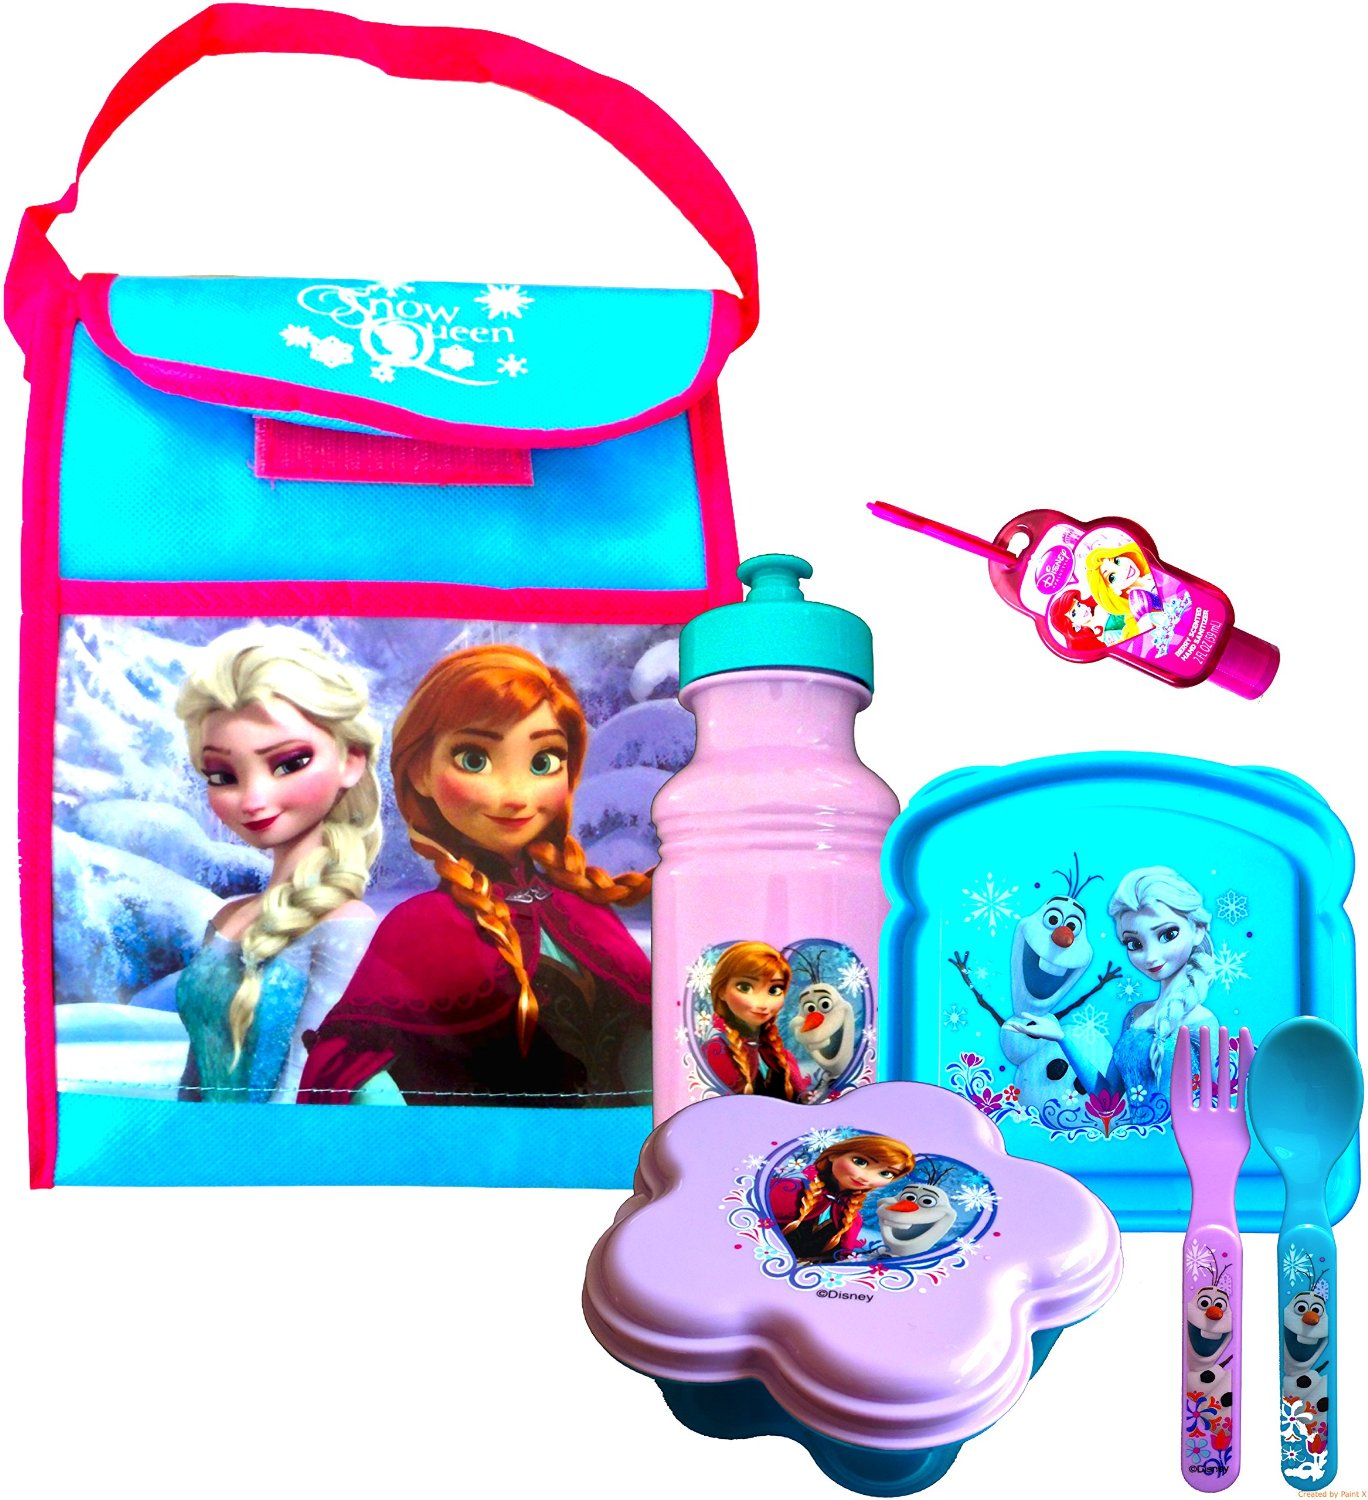 Disney Frozen Disneyland Survival Kit Includes Pull-top Water Bottle Snack Container , Sandwich Container, Pair of Utensils Fork and Spoon and Handy Clip on Disney Princess Hand Sanitizer with Bonus Non Woven Vertical Frozen Bag to Carry Around